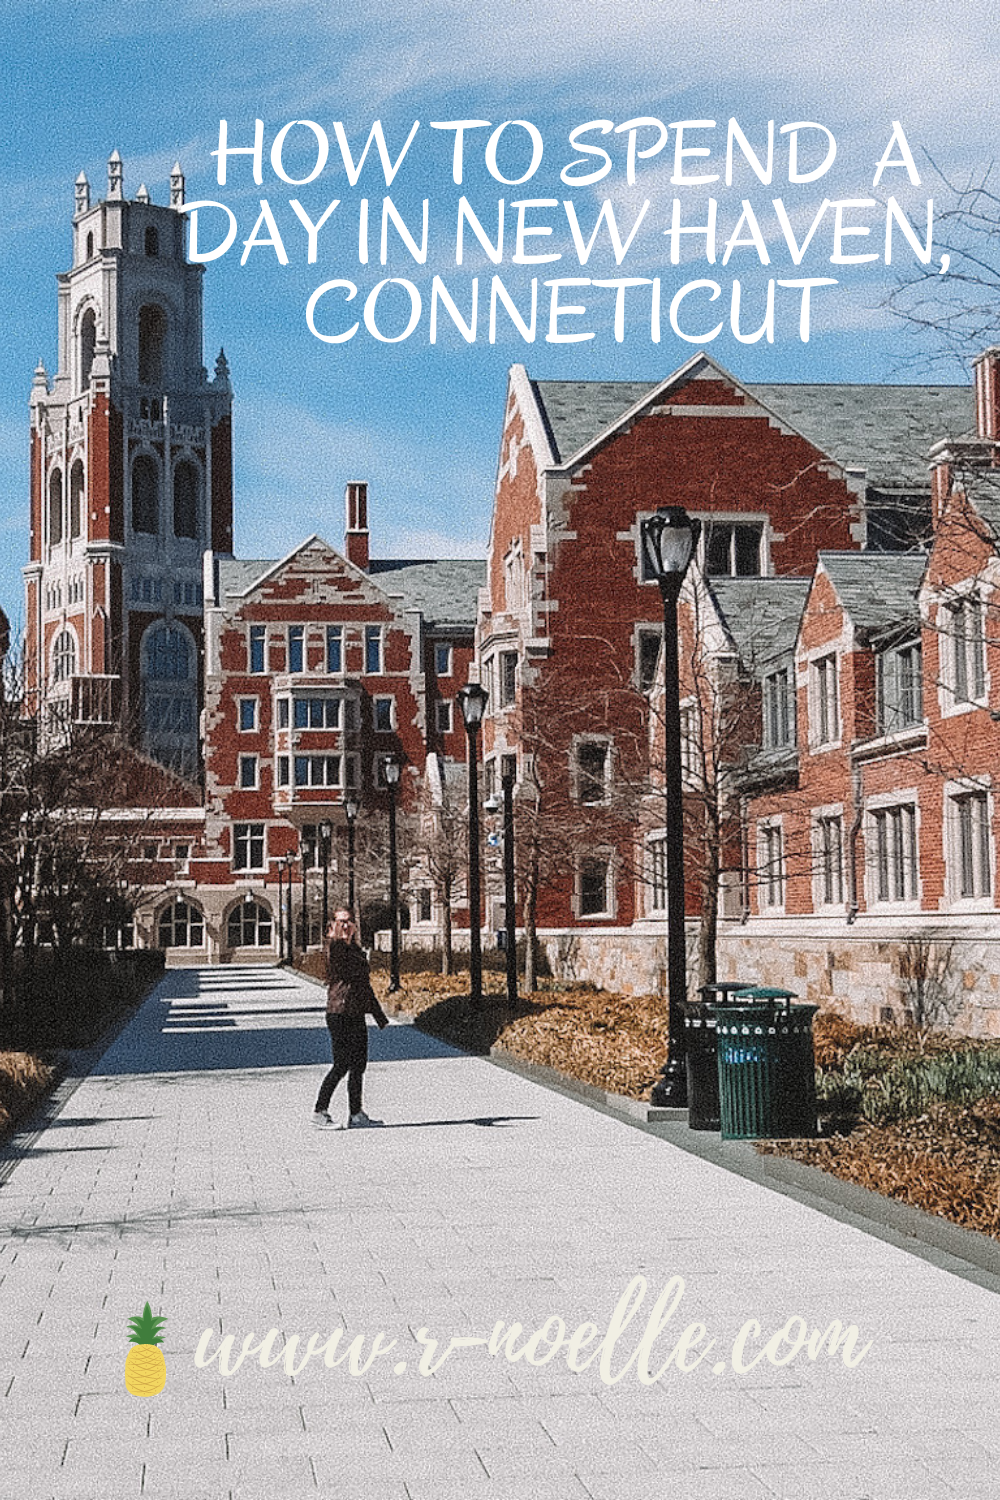 New Haven has so much history, here is how I spent my day in New Haven. This small city will not disappoint a peaceful day away. If you're looking for different scenery or something in your backyard, this guide will help you plan out your day!